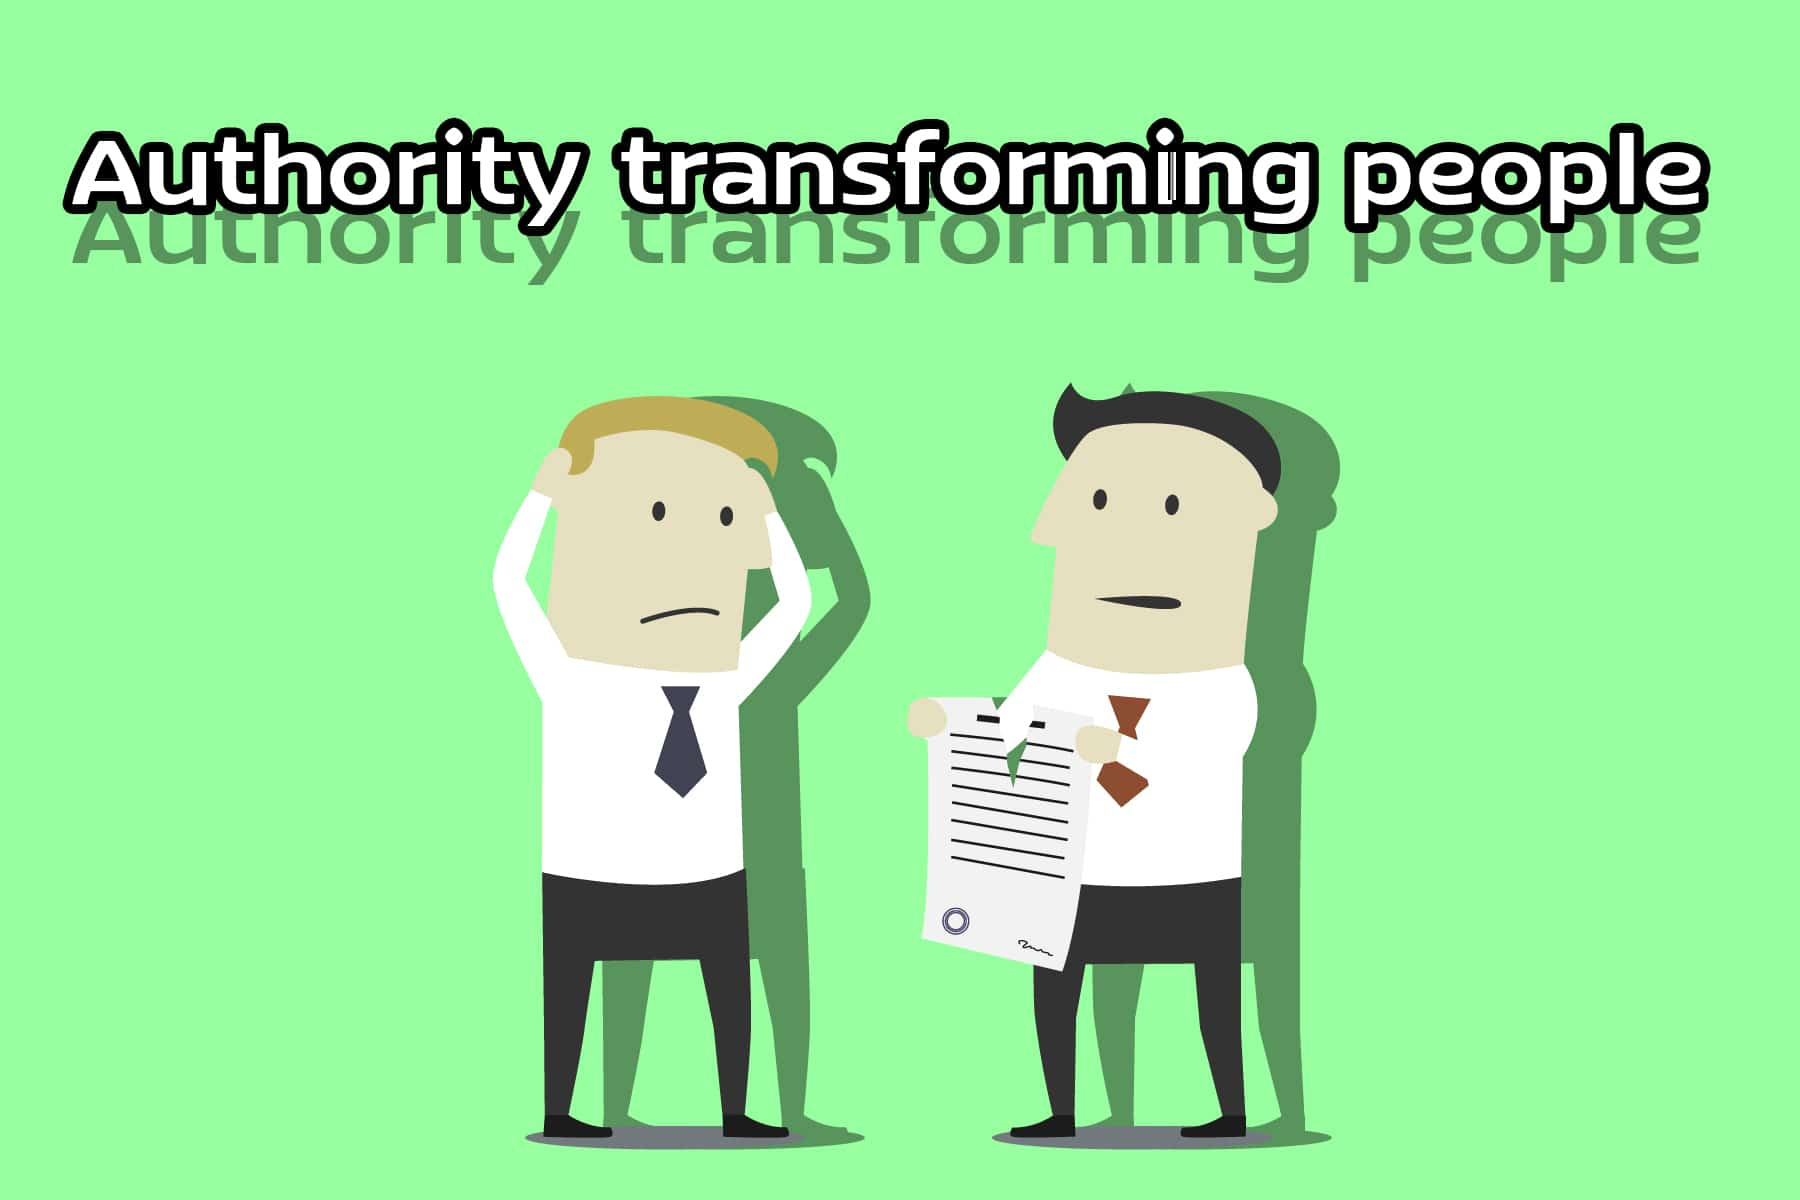 Authority transforming people